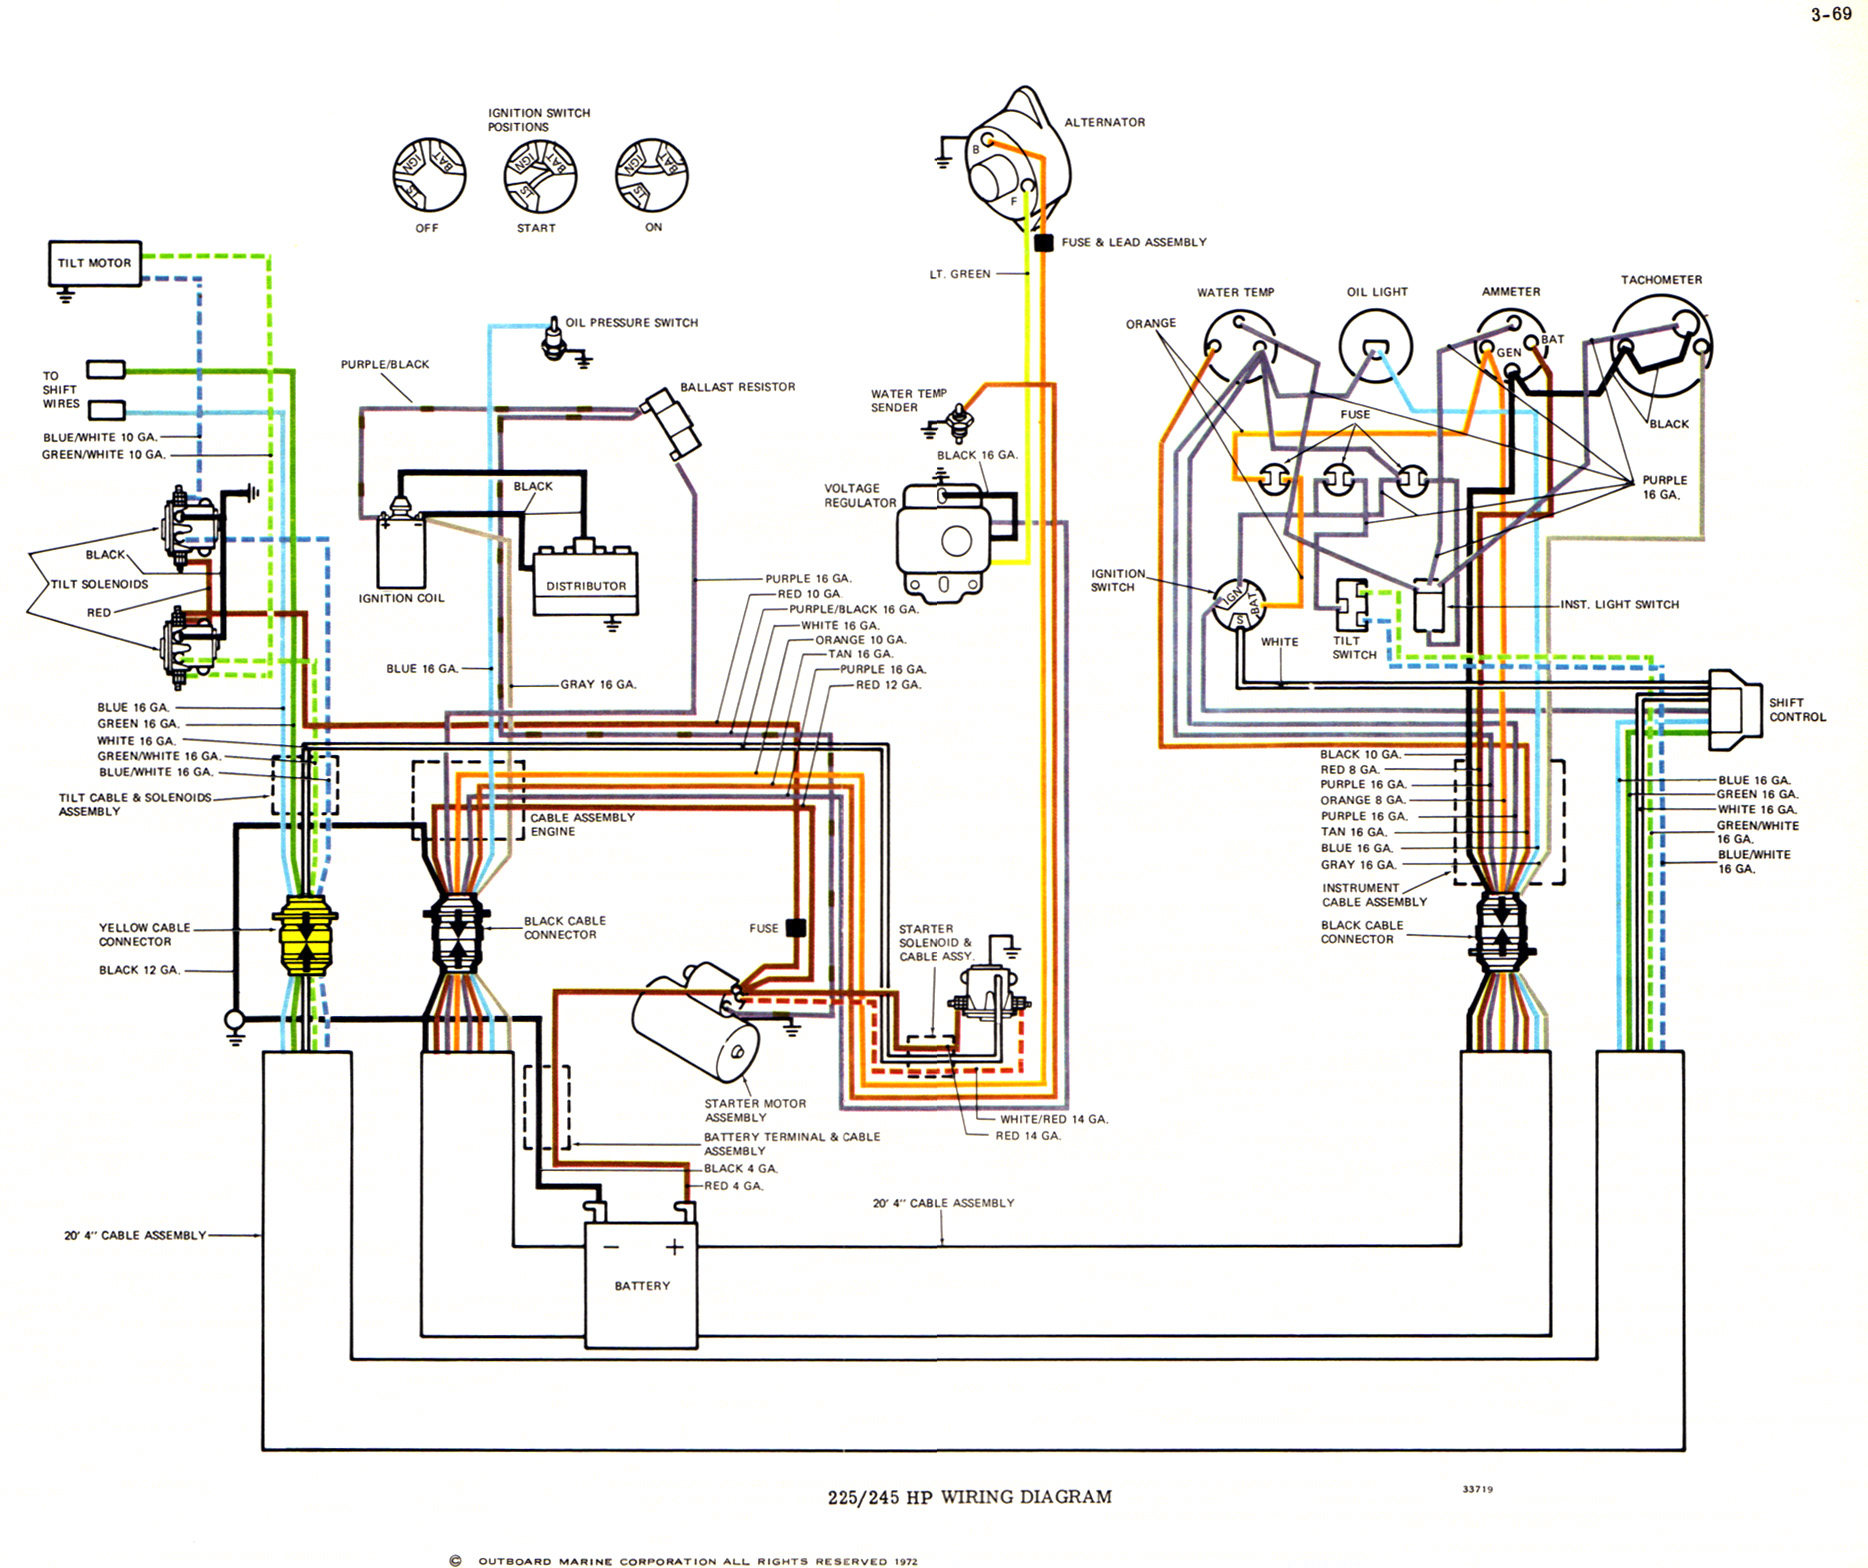 73_OMC_V8_all_big omc wiring harness diagram,wiring wiring diagram images database,Ground Wire Diagram Omc Co